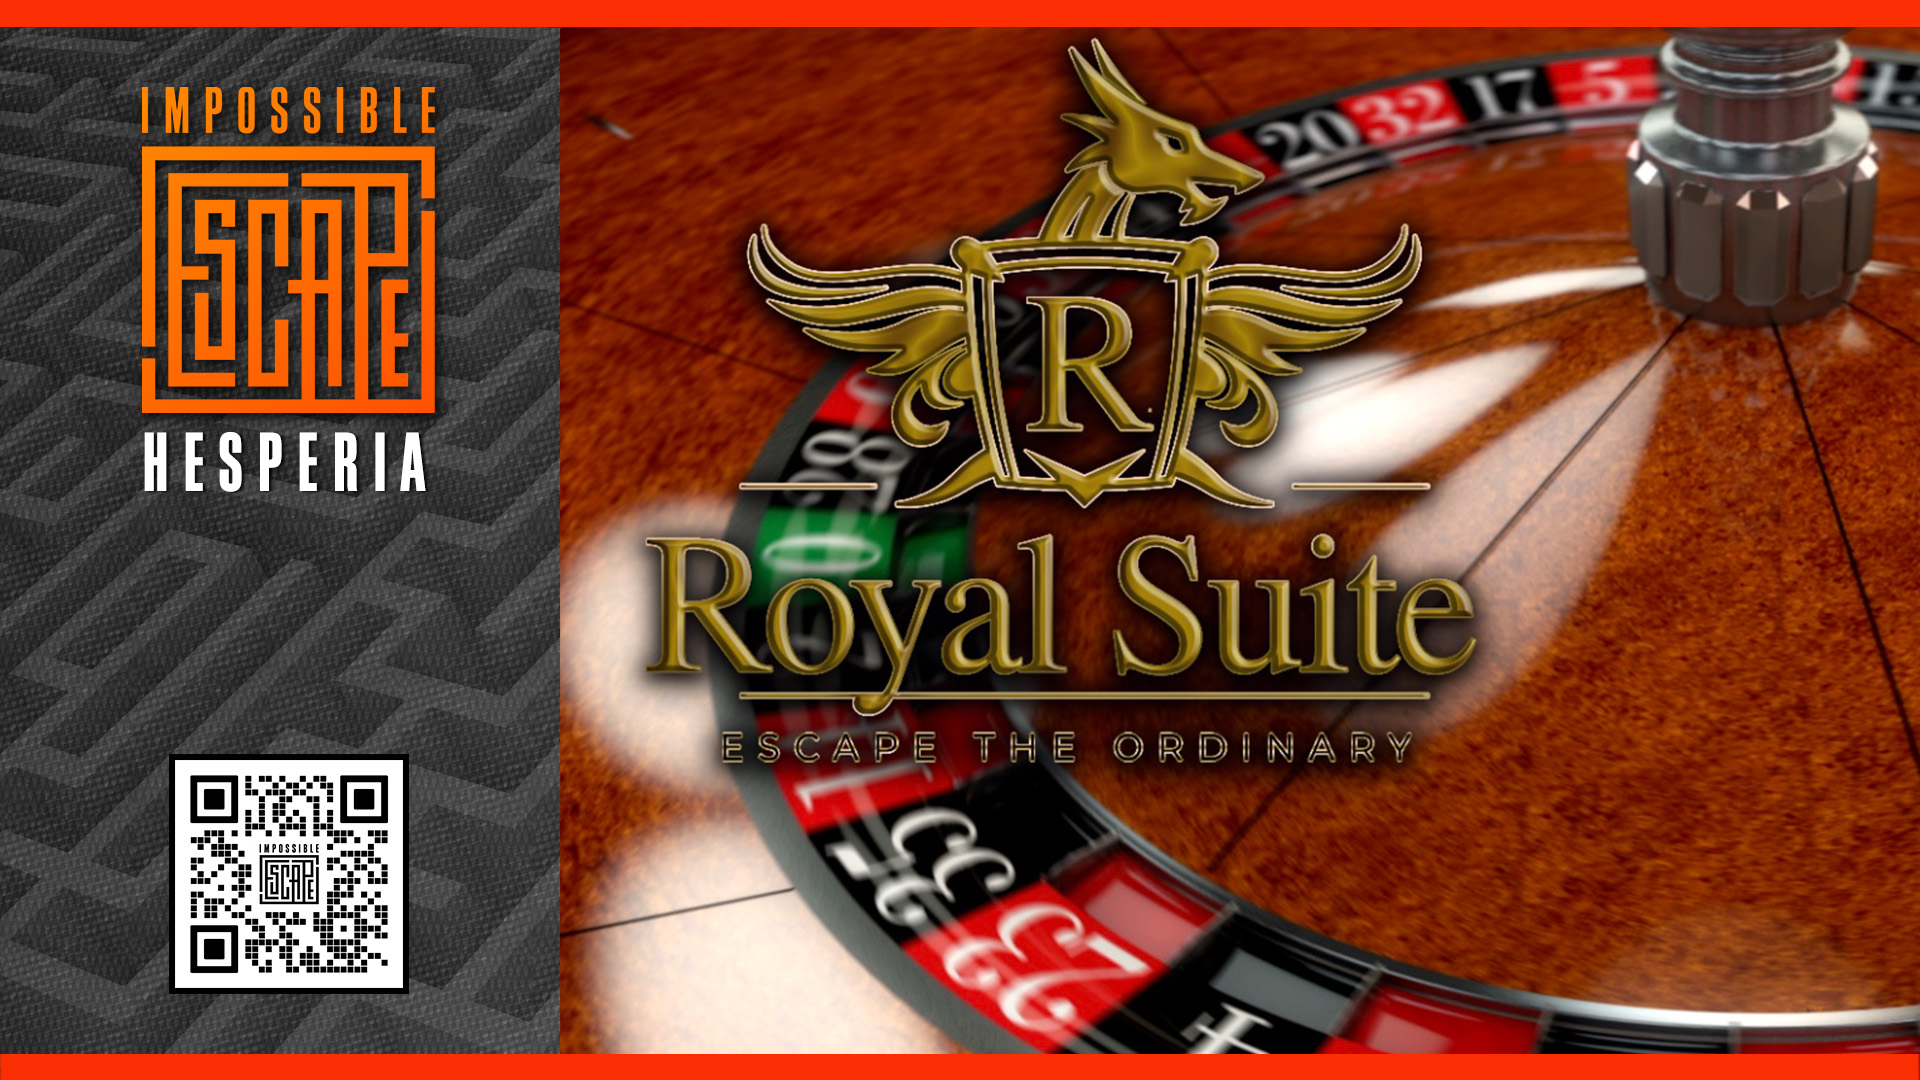 The Royal Suite at Impossible Escape Hesperia